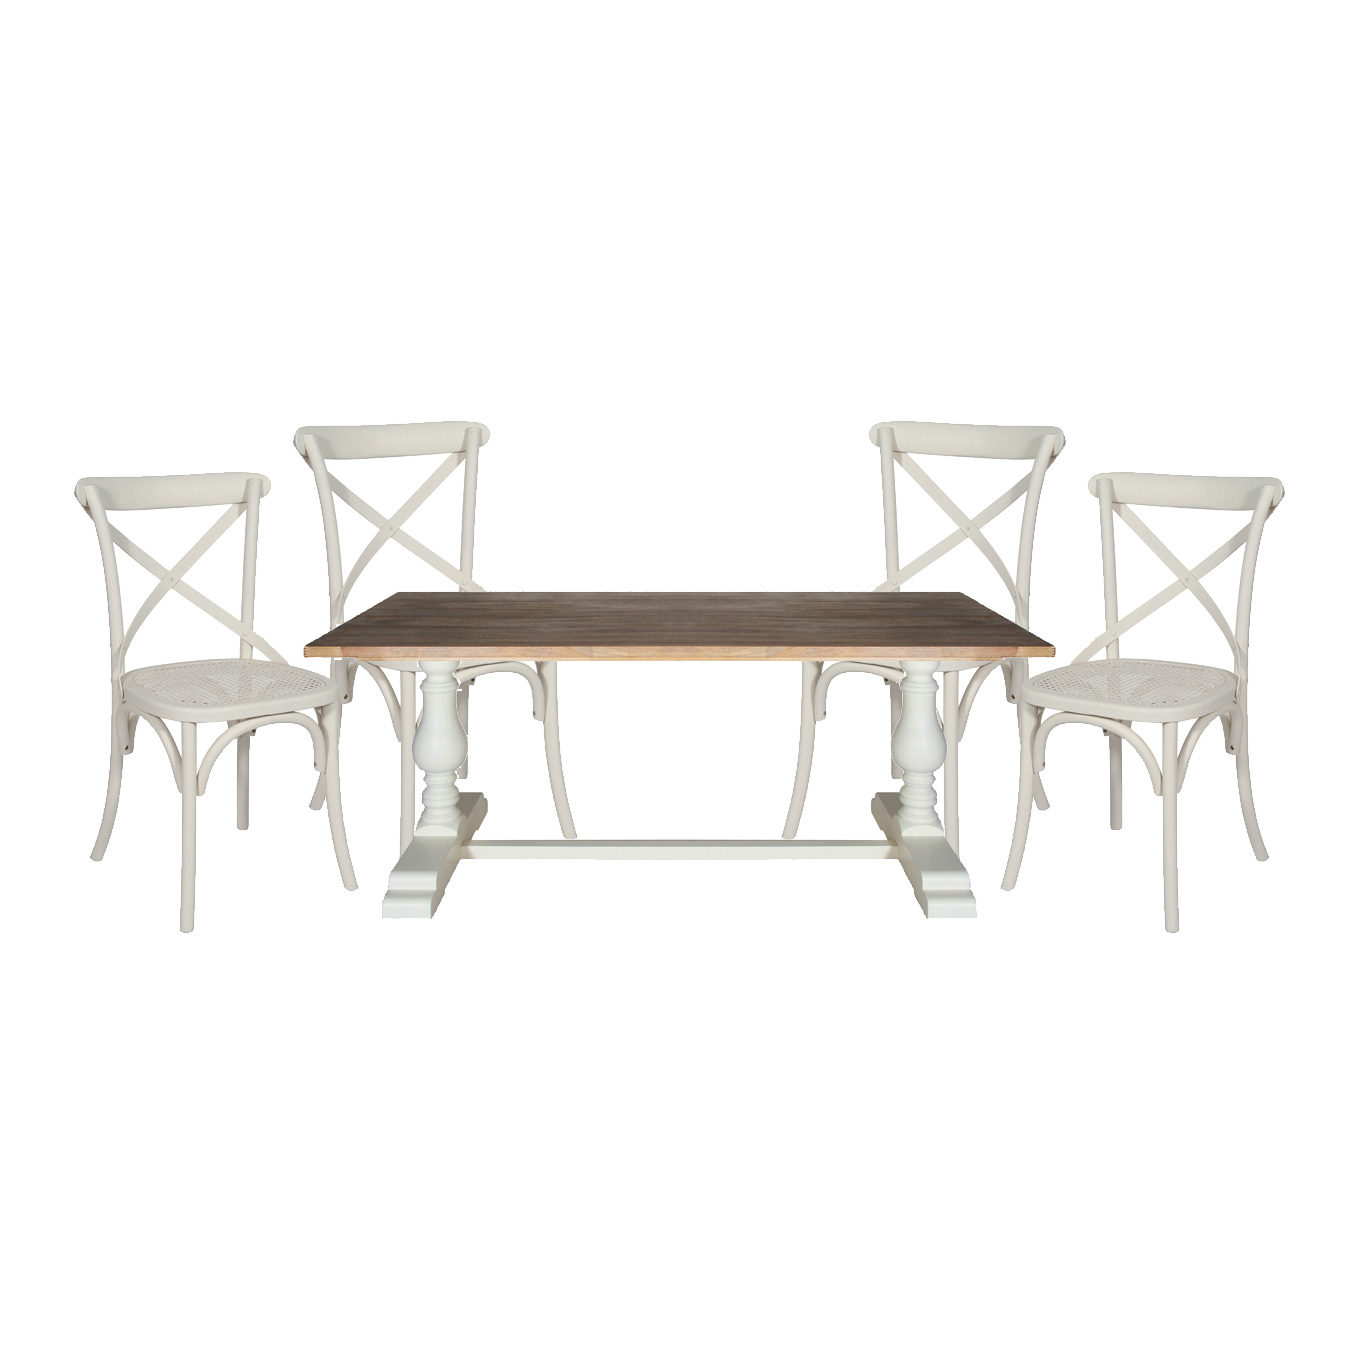 The range dining table and chairs dining table the range for Furniture at the range